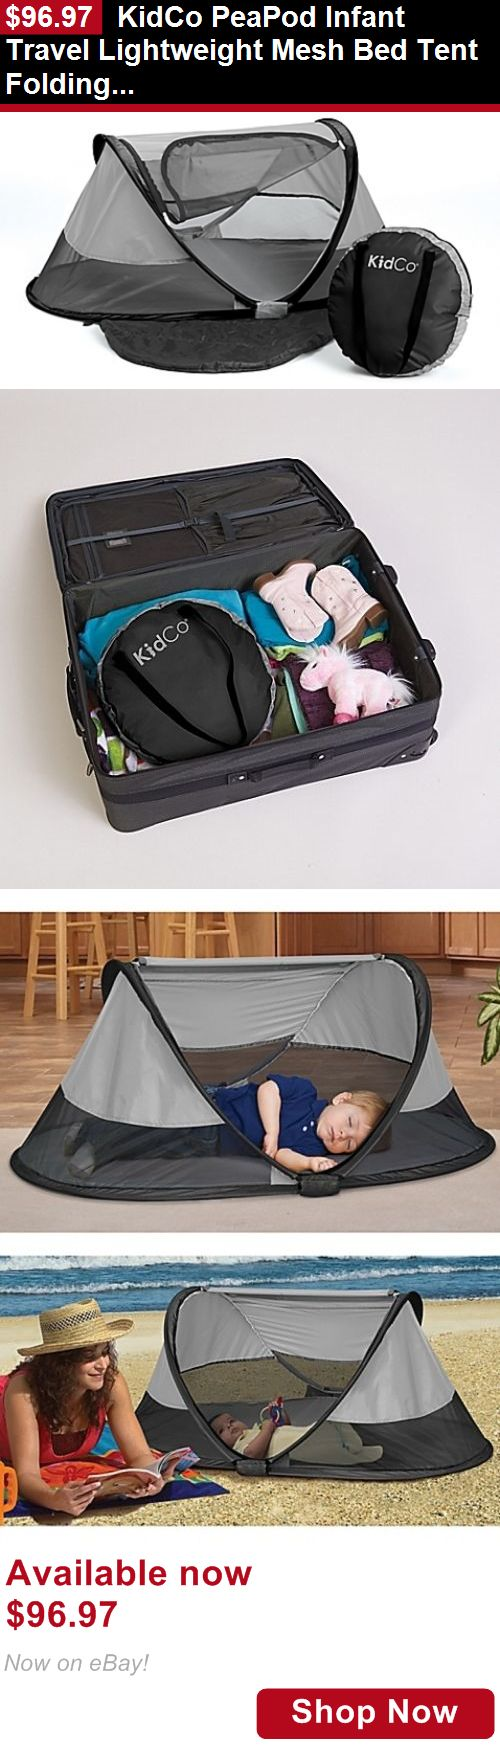 Baby play shades and tents: Kidco Peapod Infant Travel Lightweight Mesh Bed Tent Folding Sleeping Pad Carry BUY IT NOW ONLY: $96.97